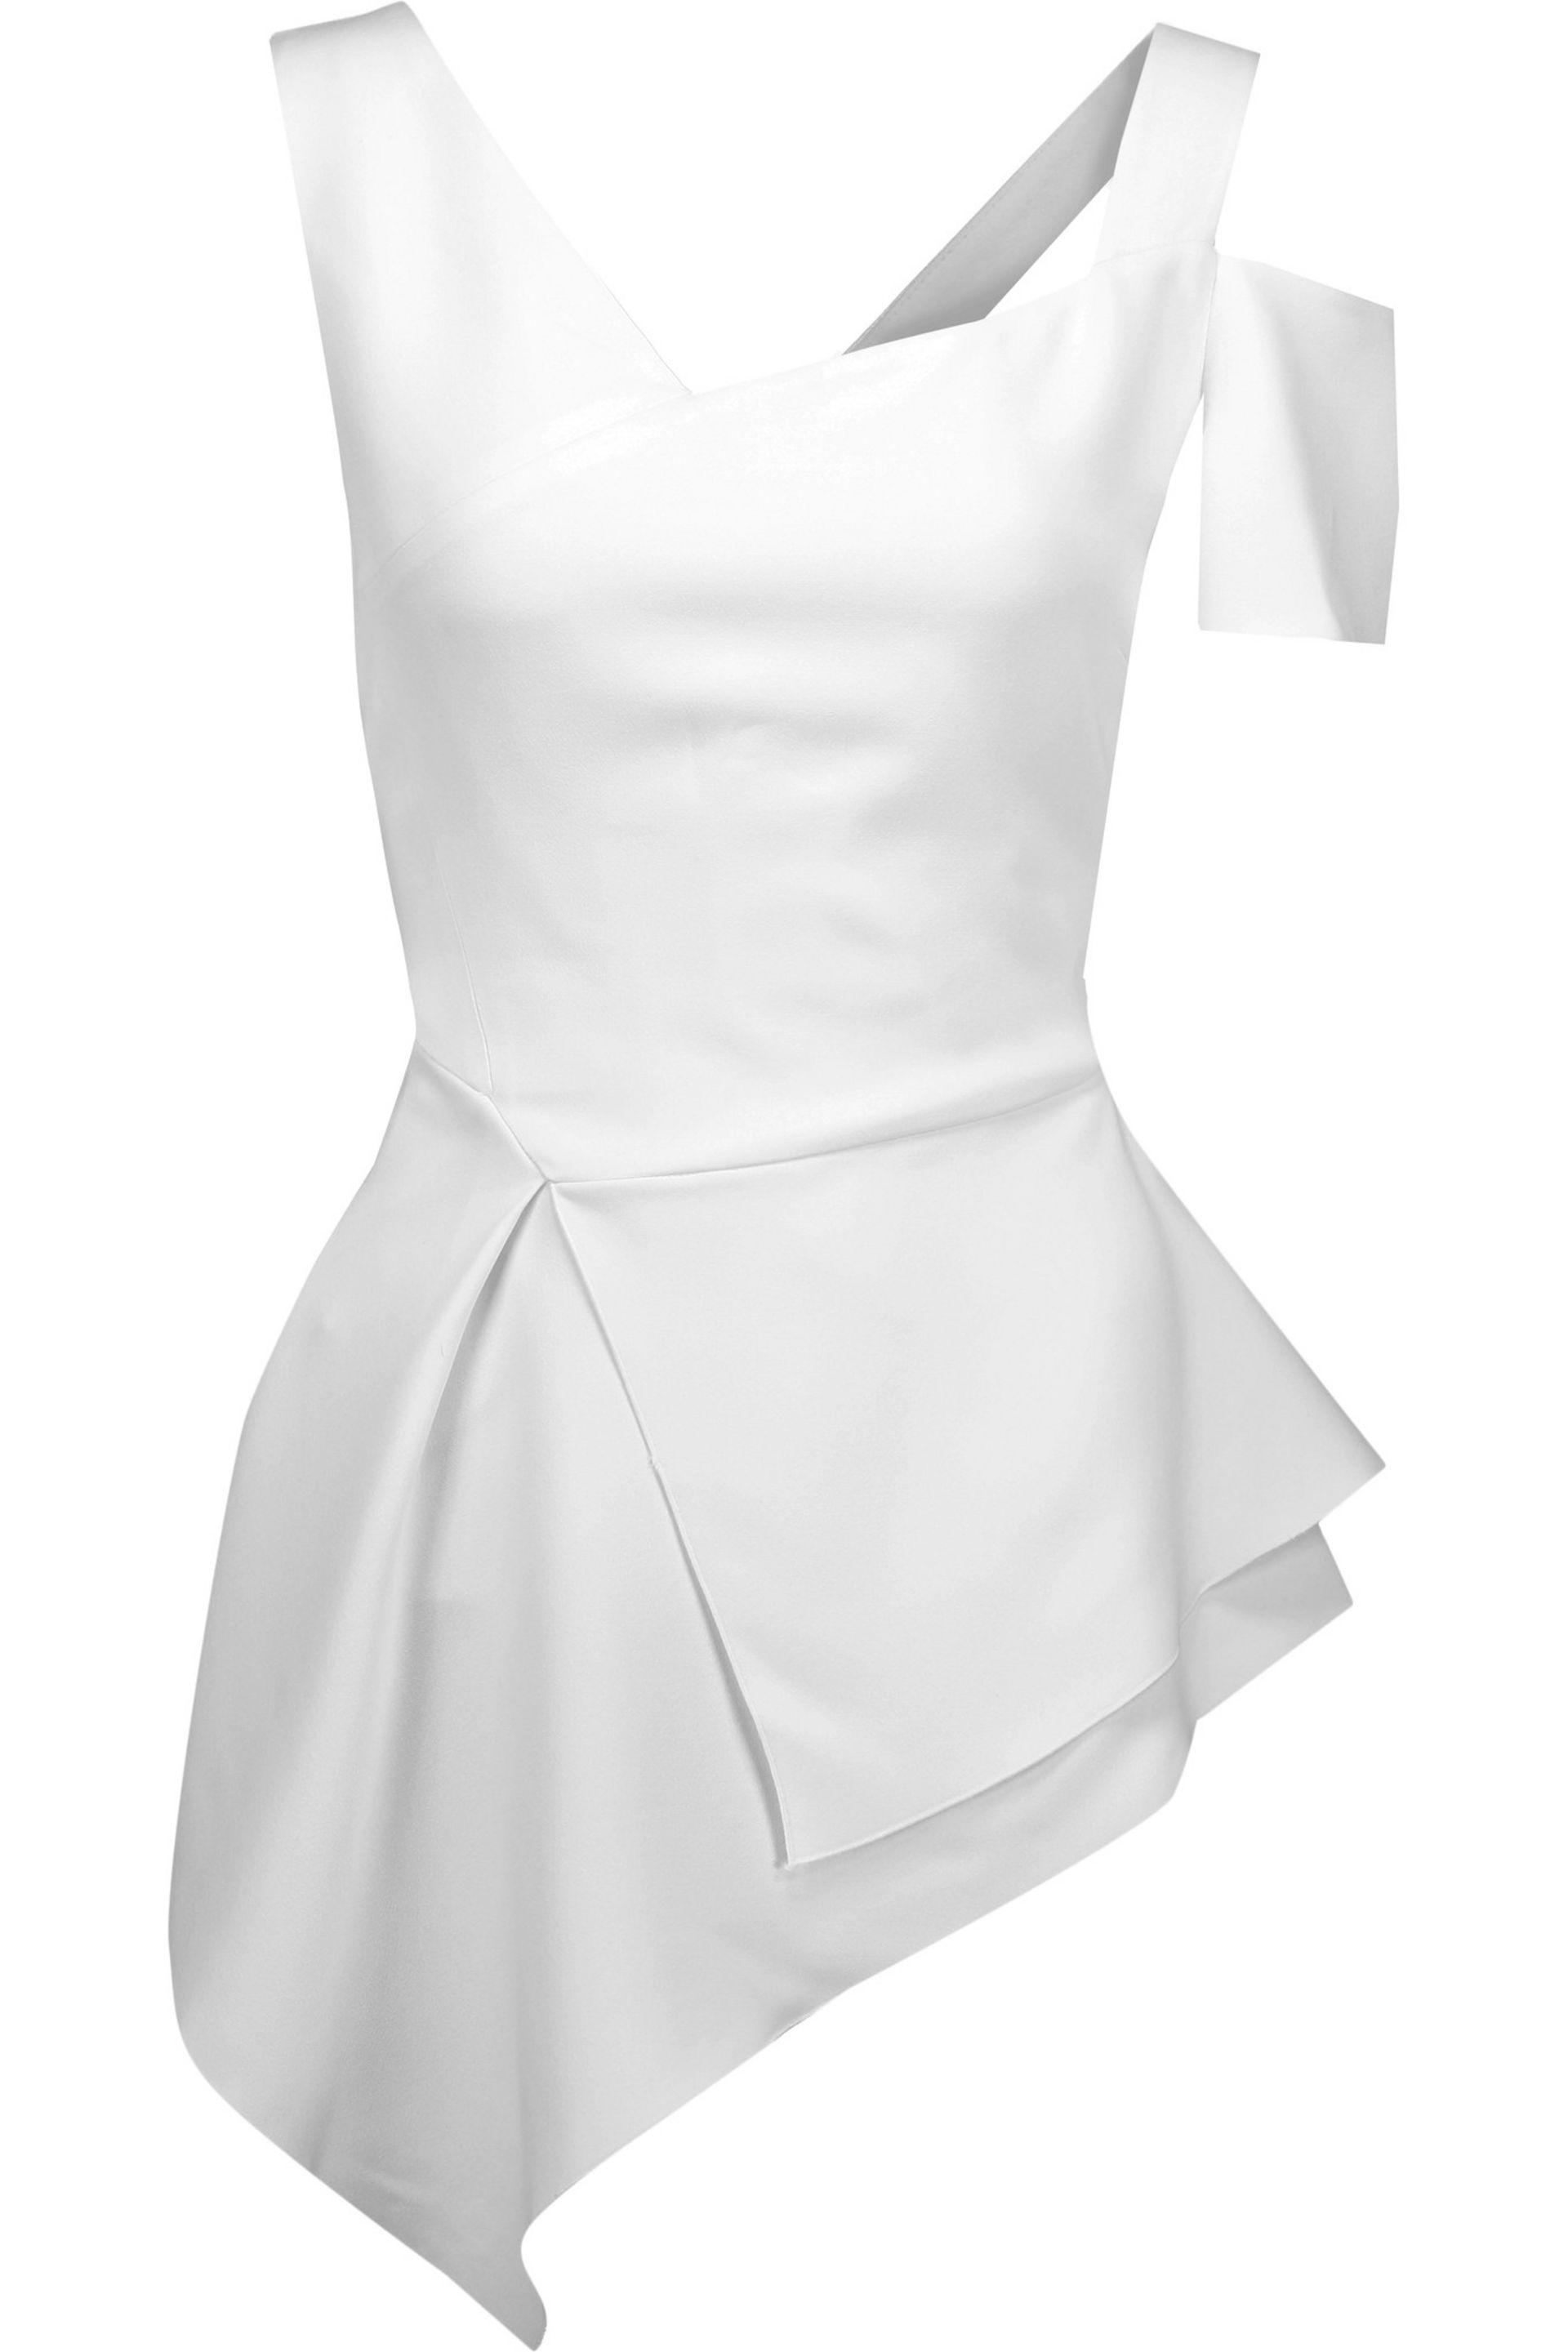 Antonio Berardi Woman Asymmetric Crepe Top White Size 40 Antonio Berardi Low Cost Al8vQcZd